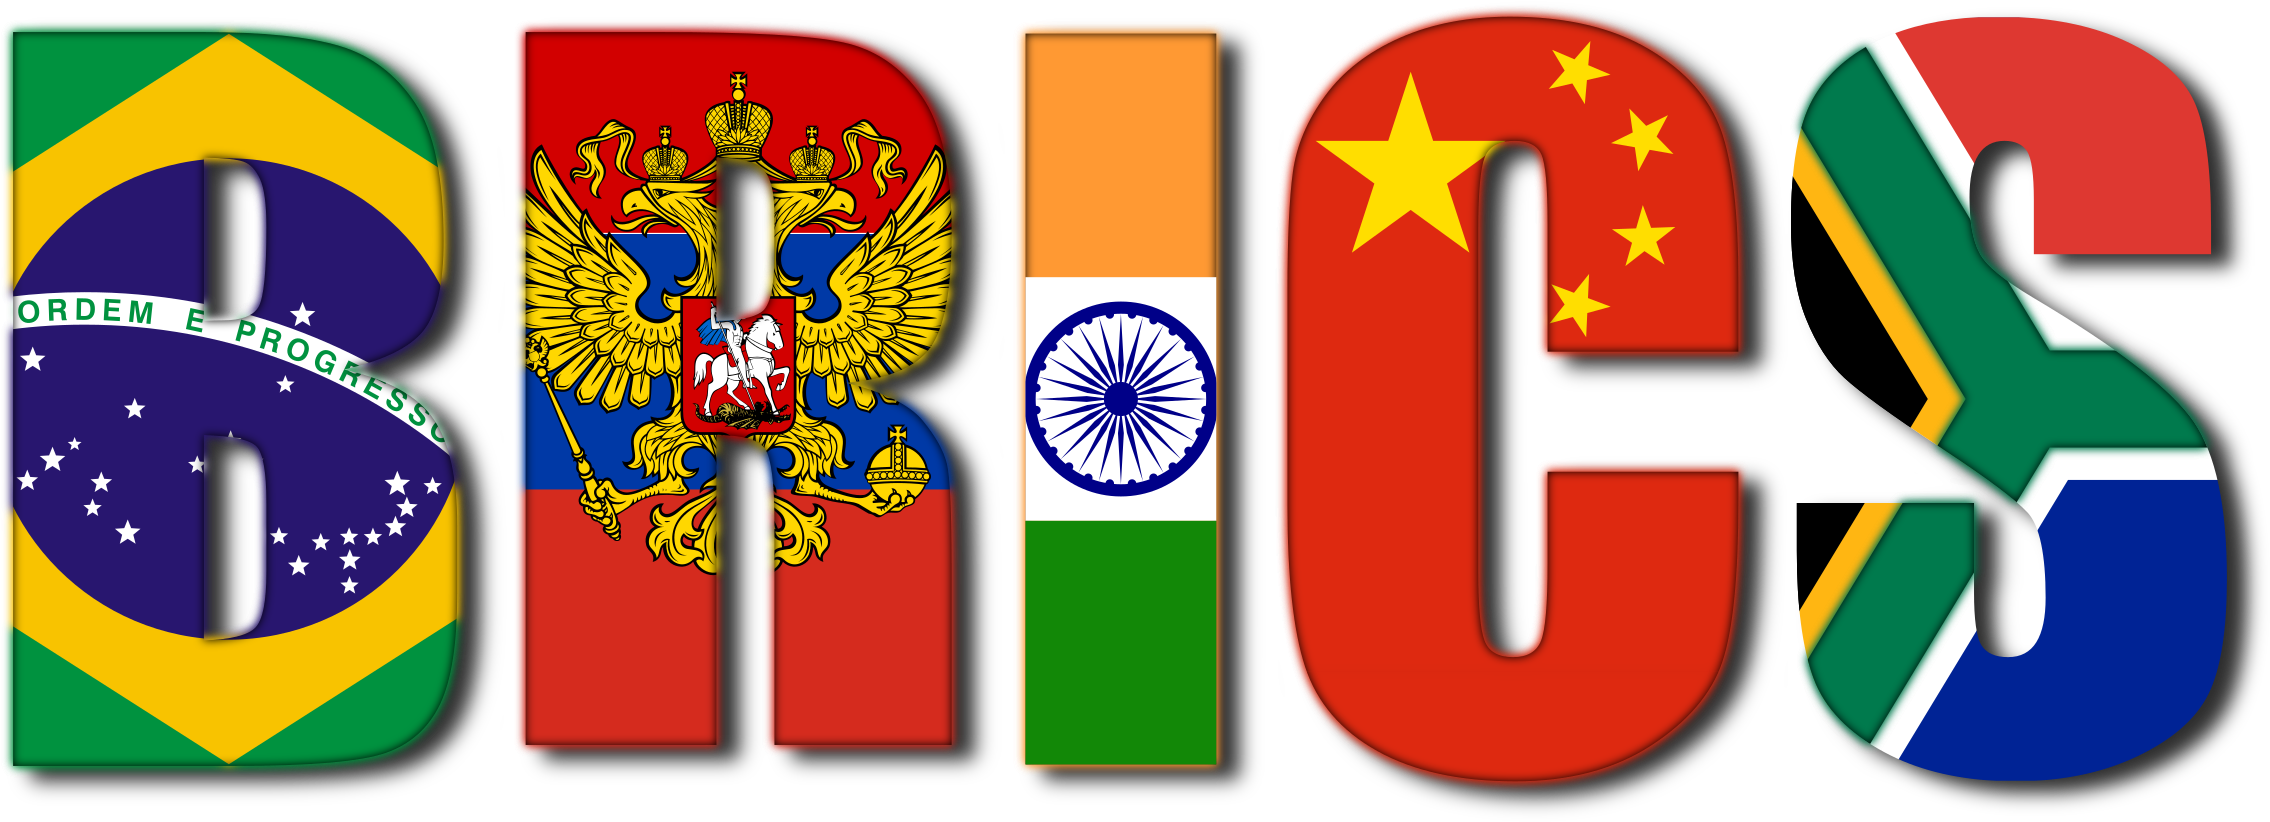 HD This Free Icons Png Design Of Brics.